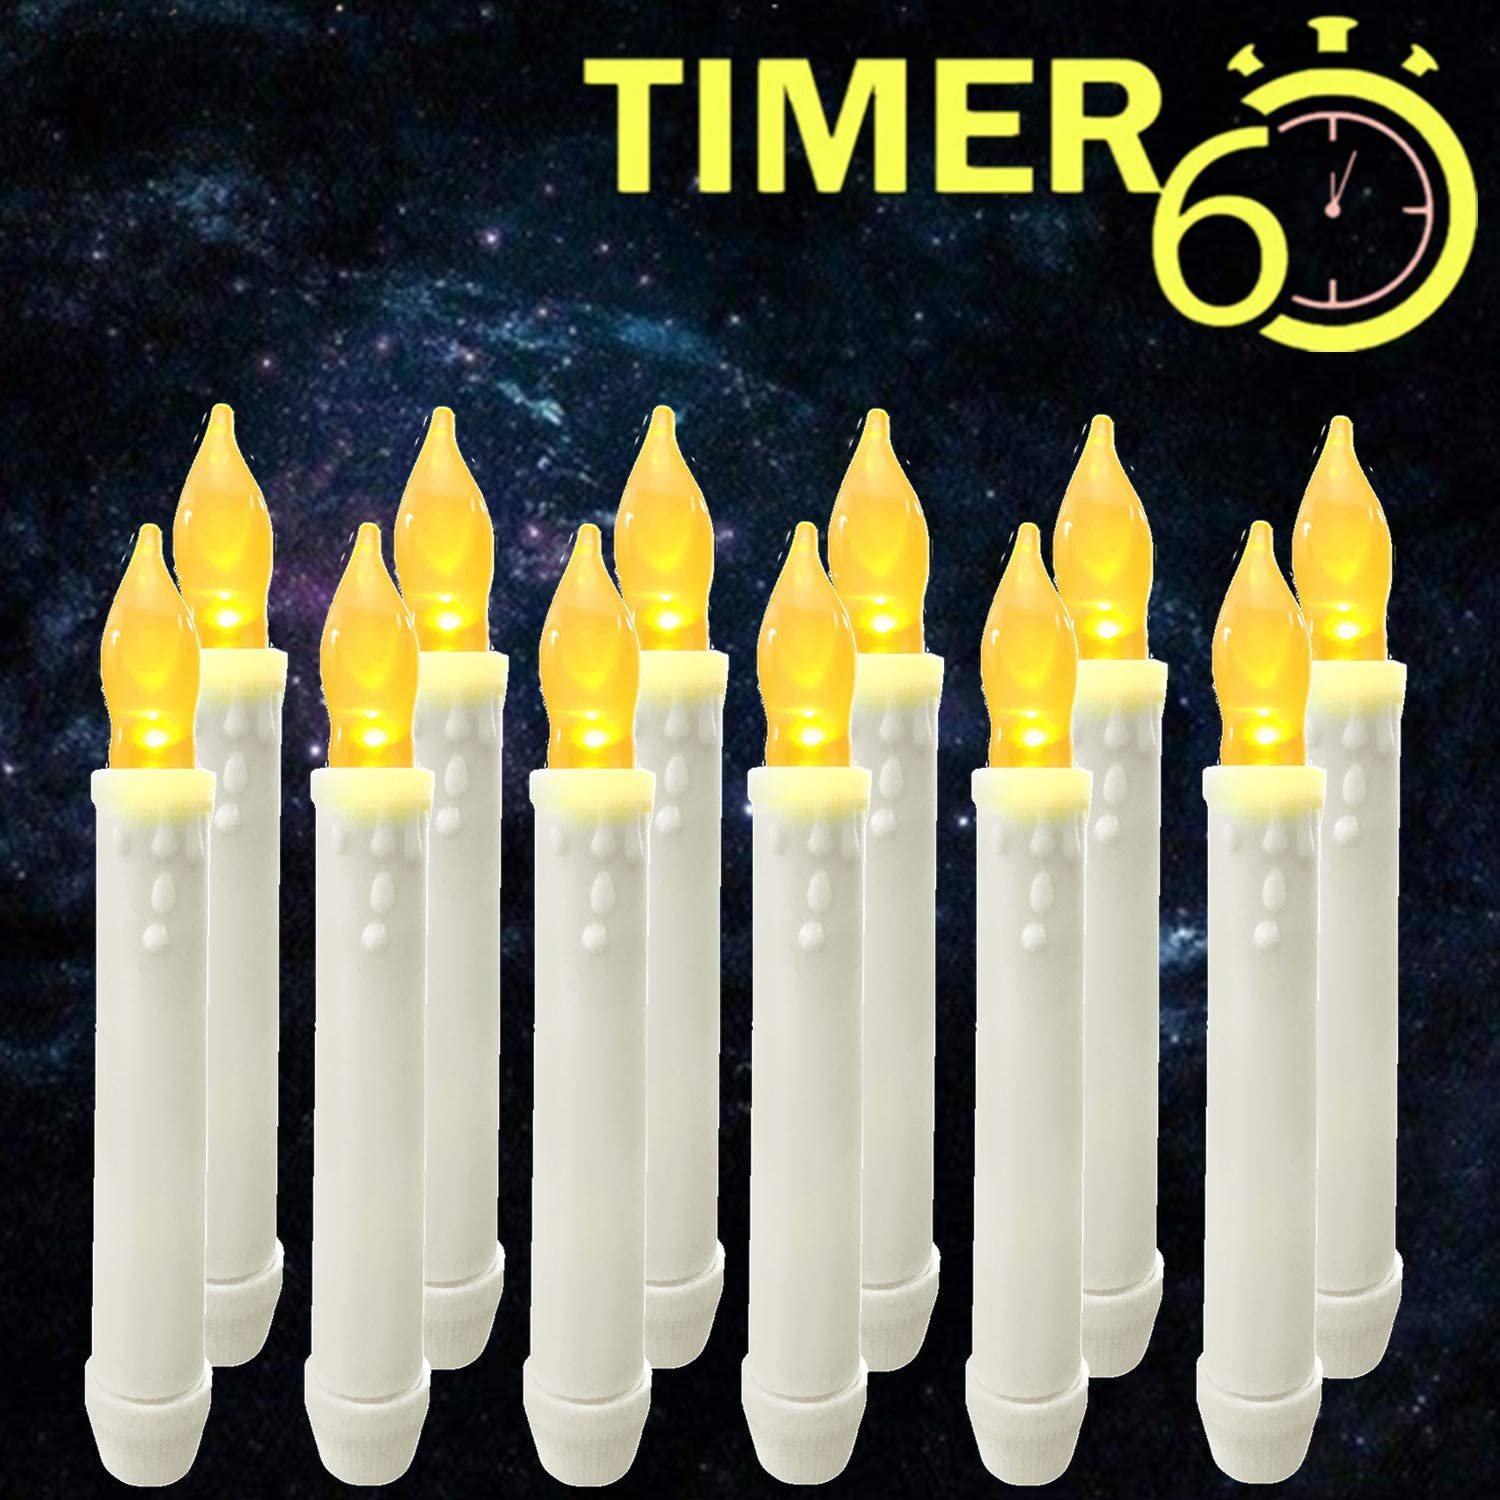 12 Pcs Battery Operated Led Flameless Floating Candles Lights With Timer For Party Decor,Window Candlesticks,Electric Fake Taper Candle For Halloween/Christmas/Thanksgiving/Birthday/Church Decorations